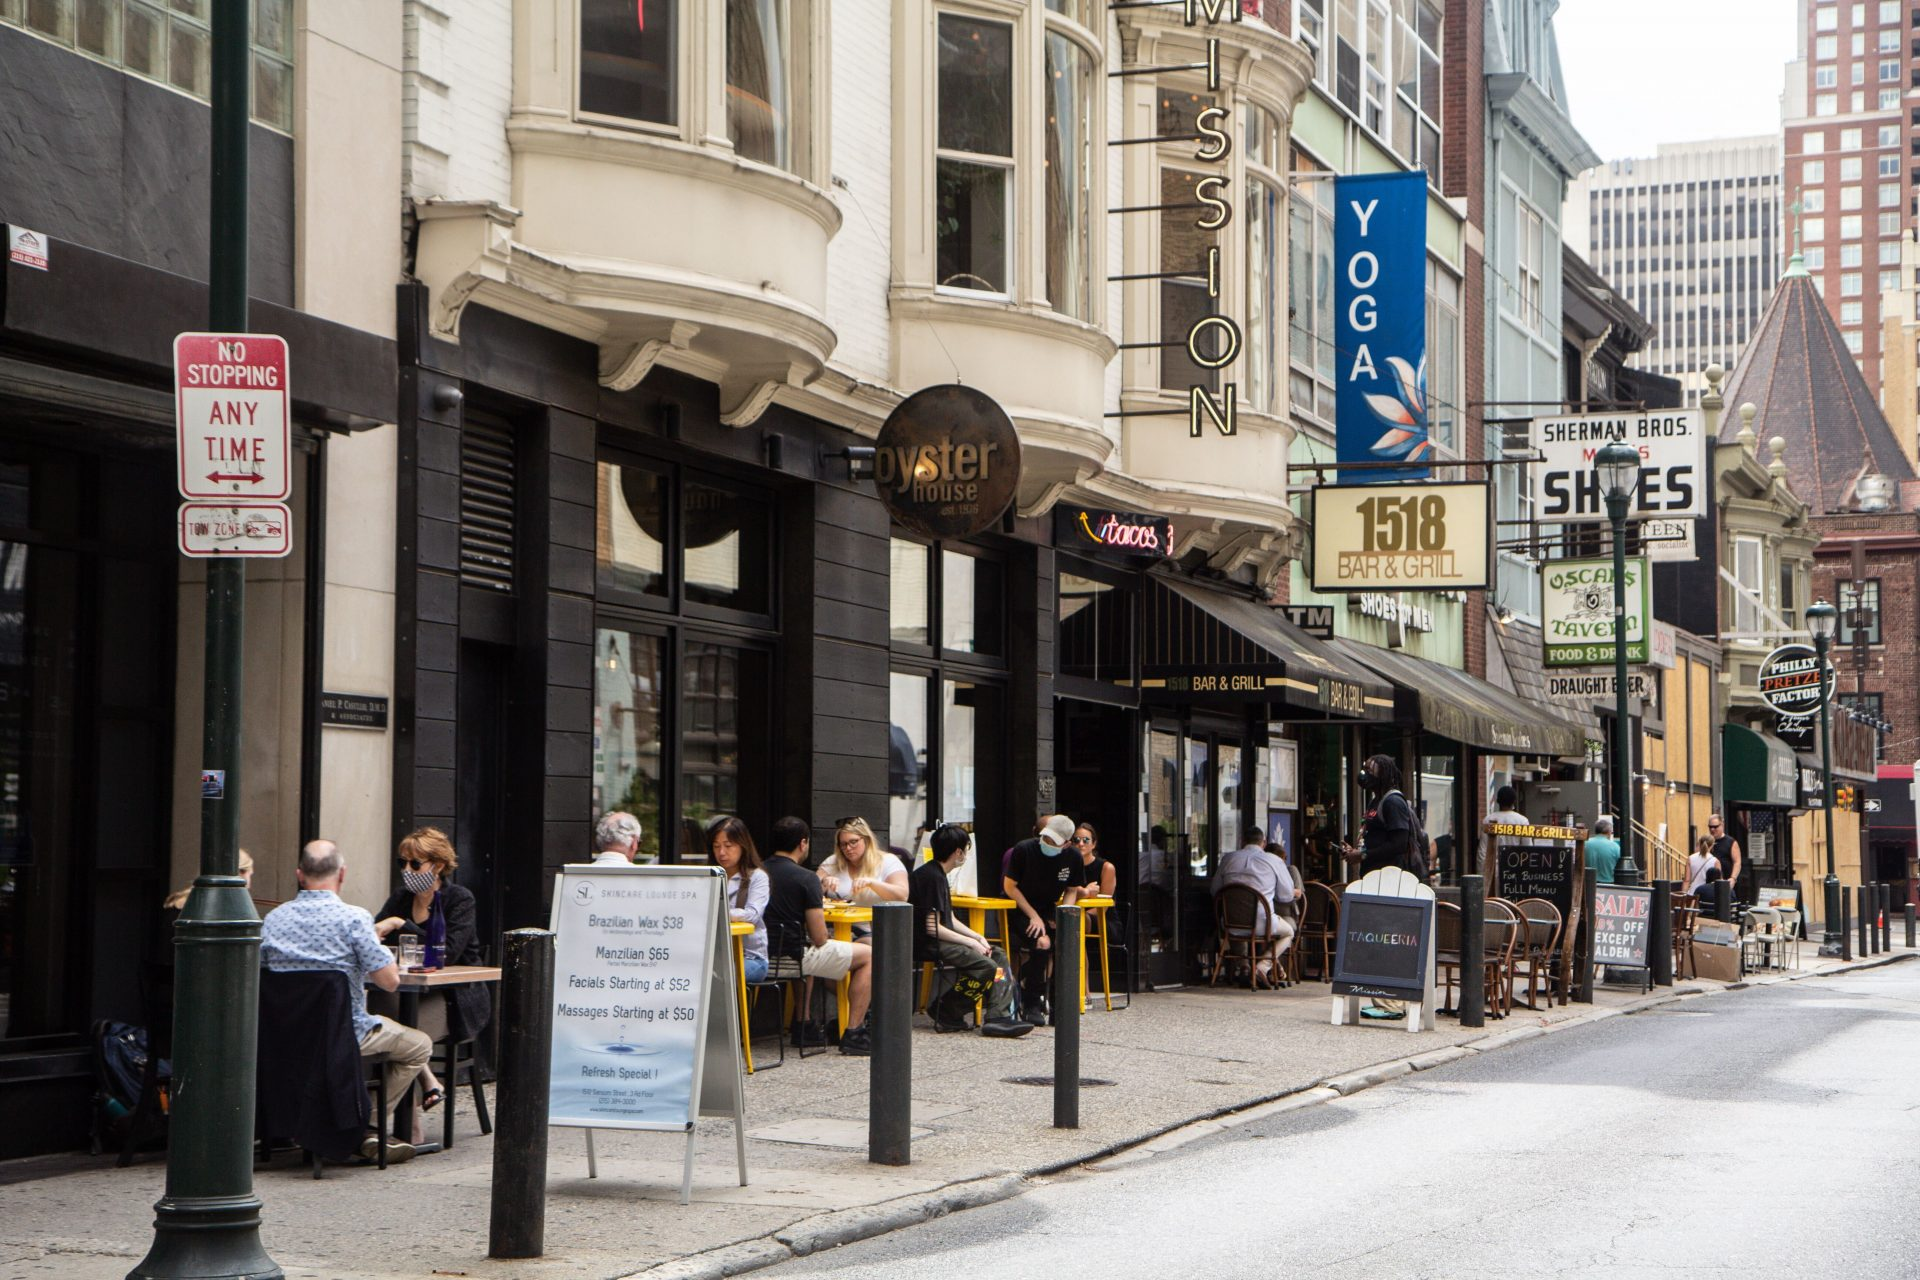 Dining in Philadelphia will remain outdoor seating only for now.